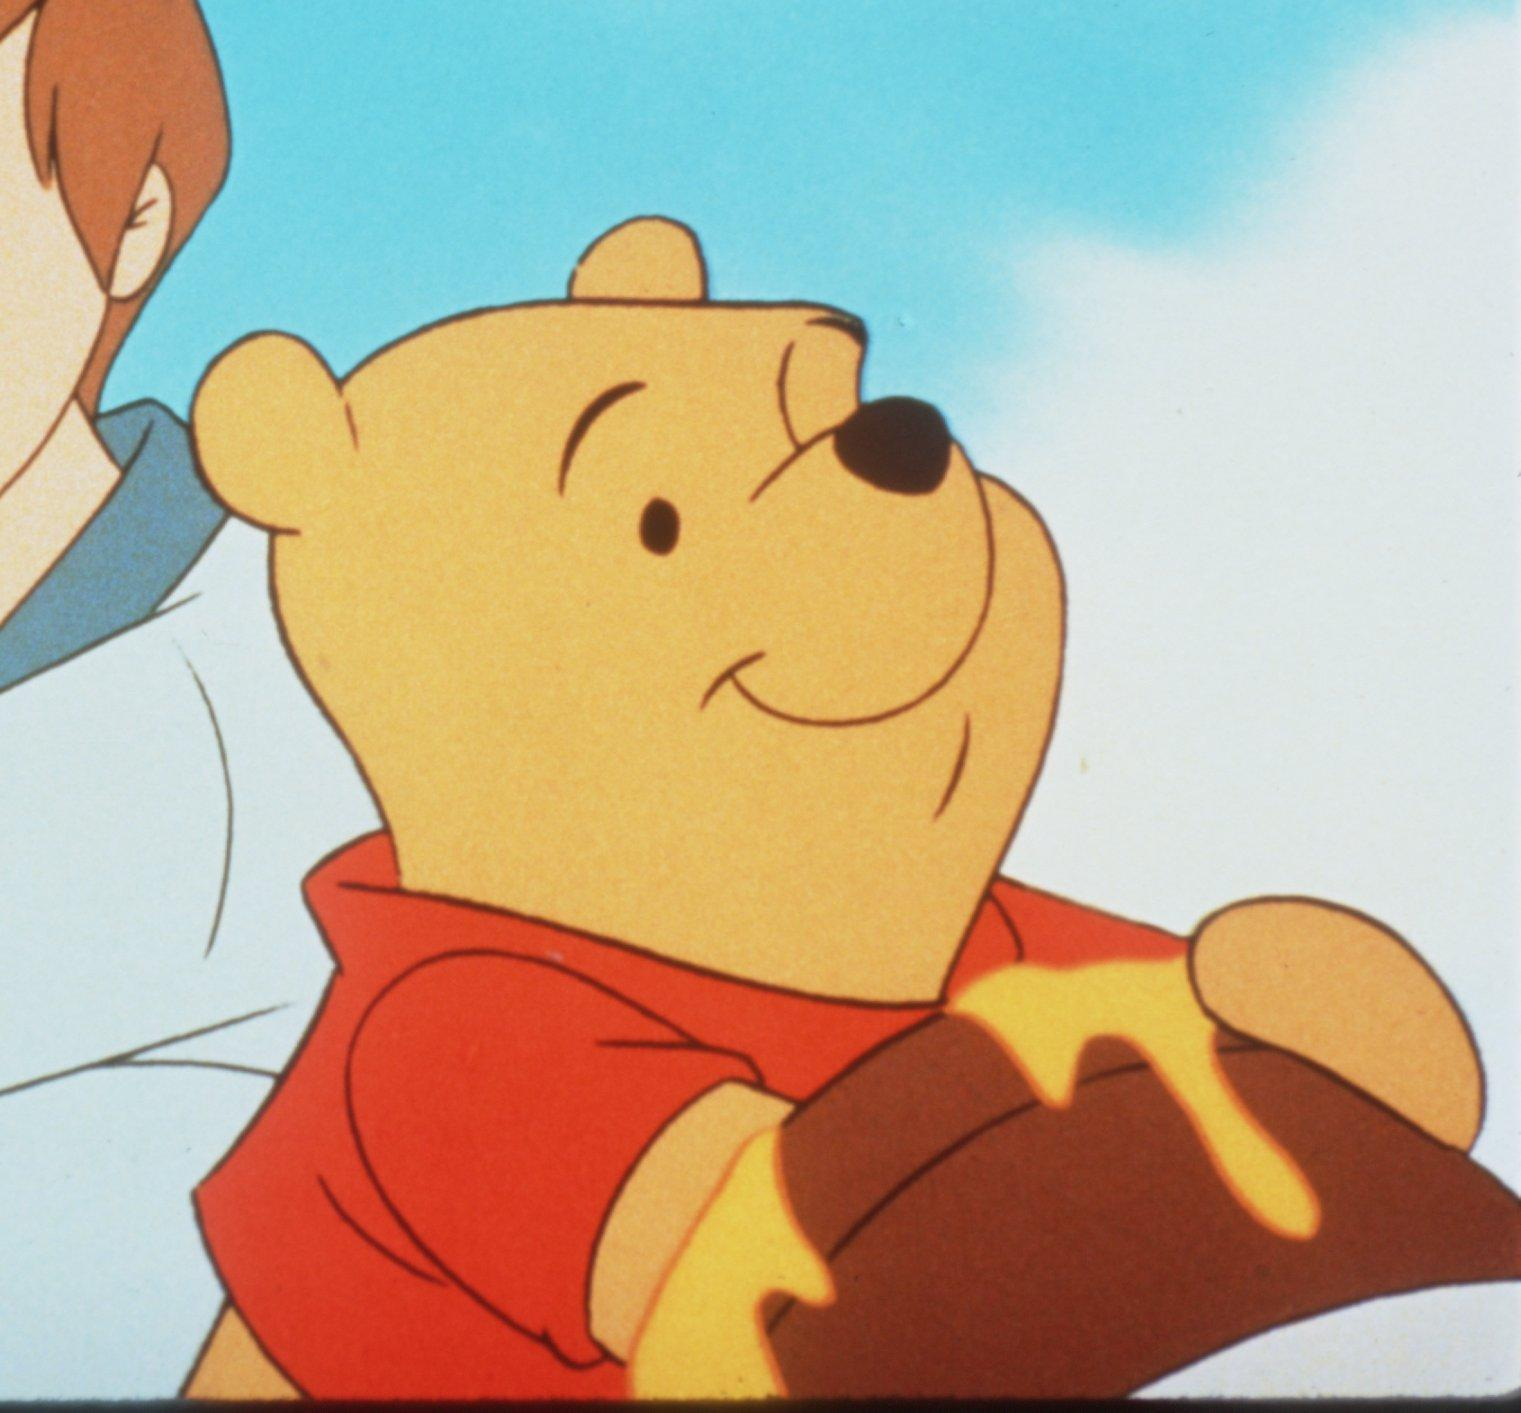 Winnie the Pooh - is he going to be behind the Quins revival?